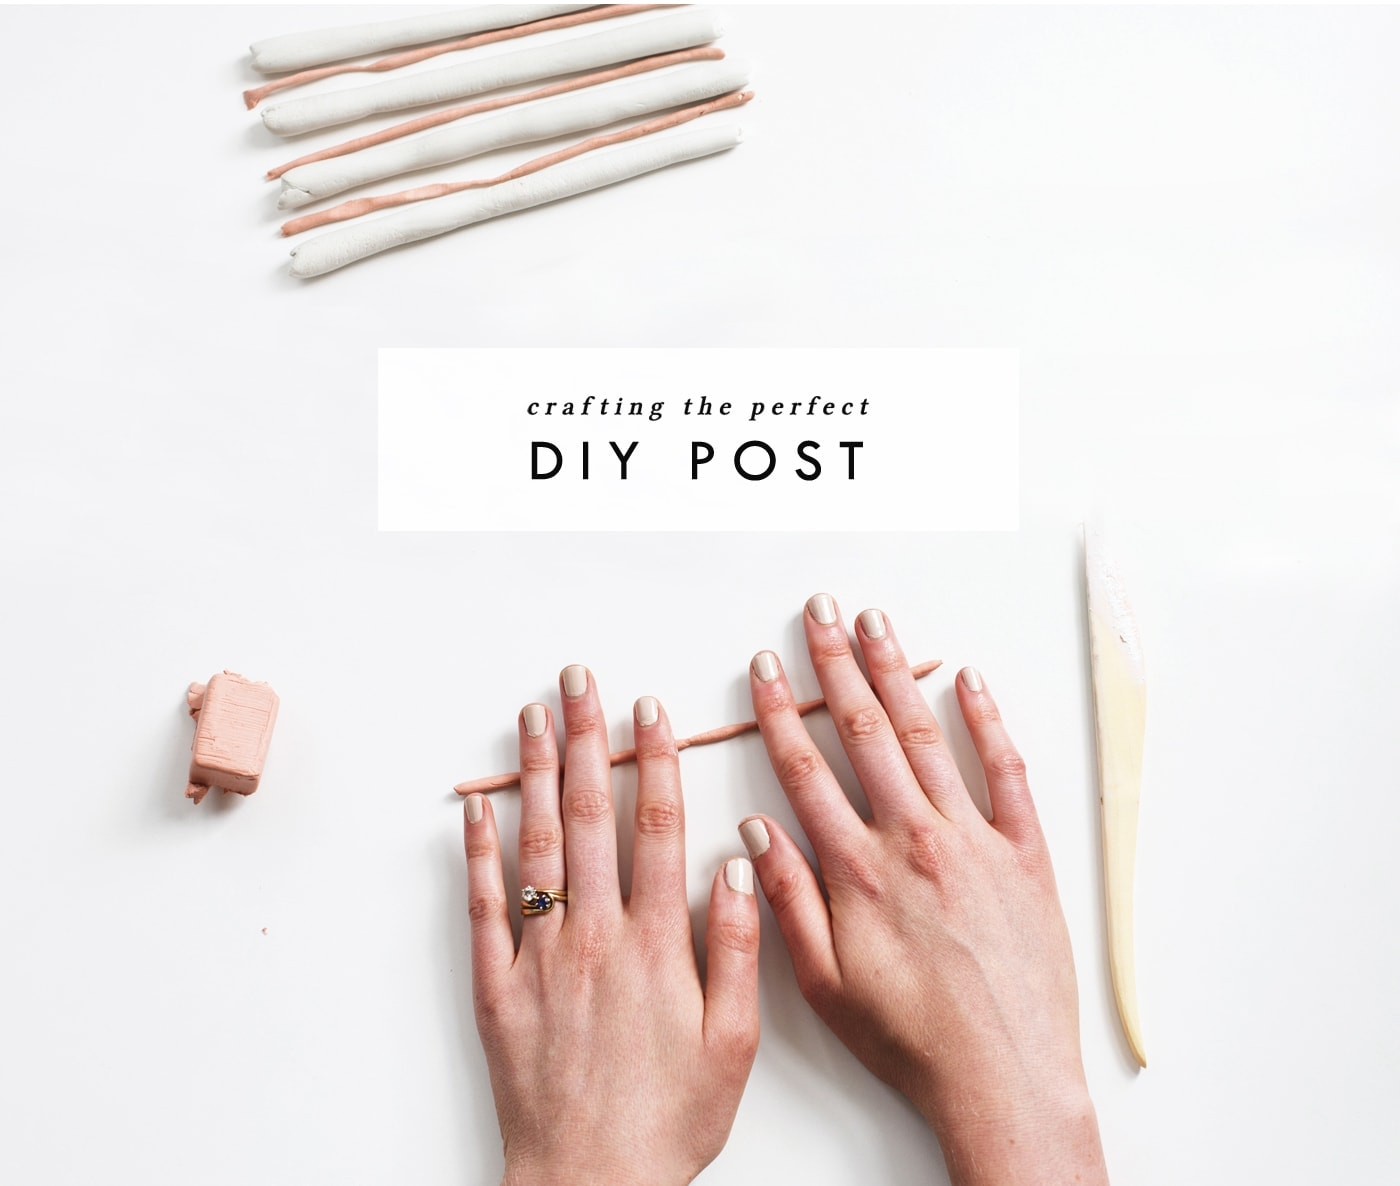 how-to-craft-the-perfect-diy-post-from-start-to-finish-blogger-tips